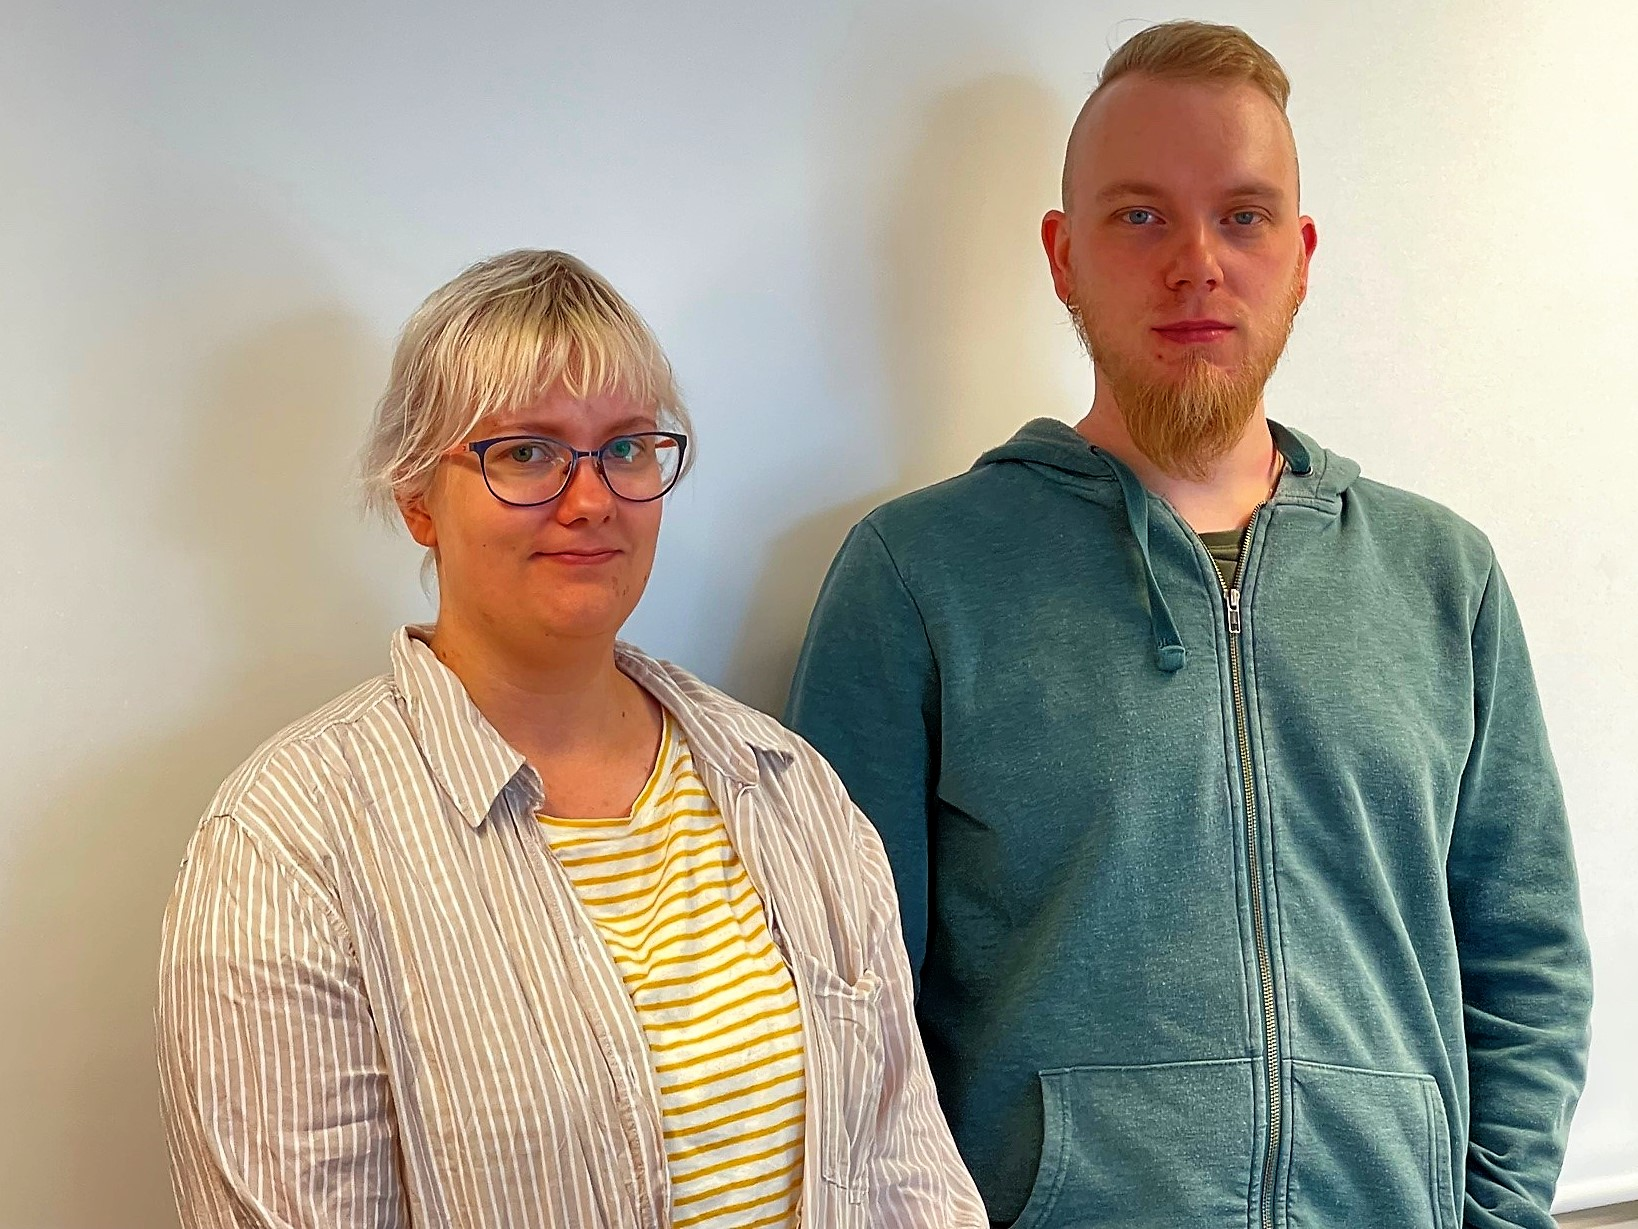 Maija Kukkola and Teemu Junnila will start their internship at Centria University of Applied Sciences at Centria SecuLab immediately after Midsummer. They have attended Information Security training and the internship at Centria is a good option as Centria is a familiar place for both through their studies.